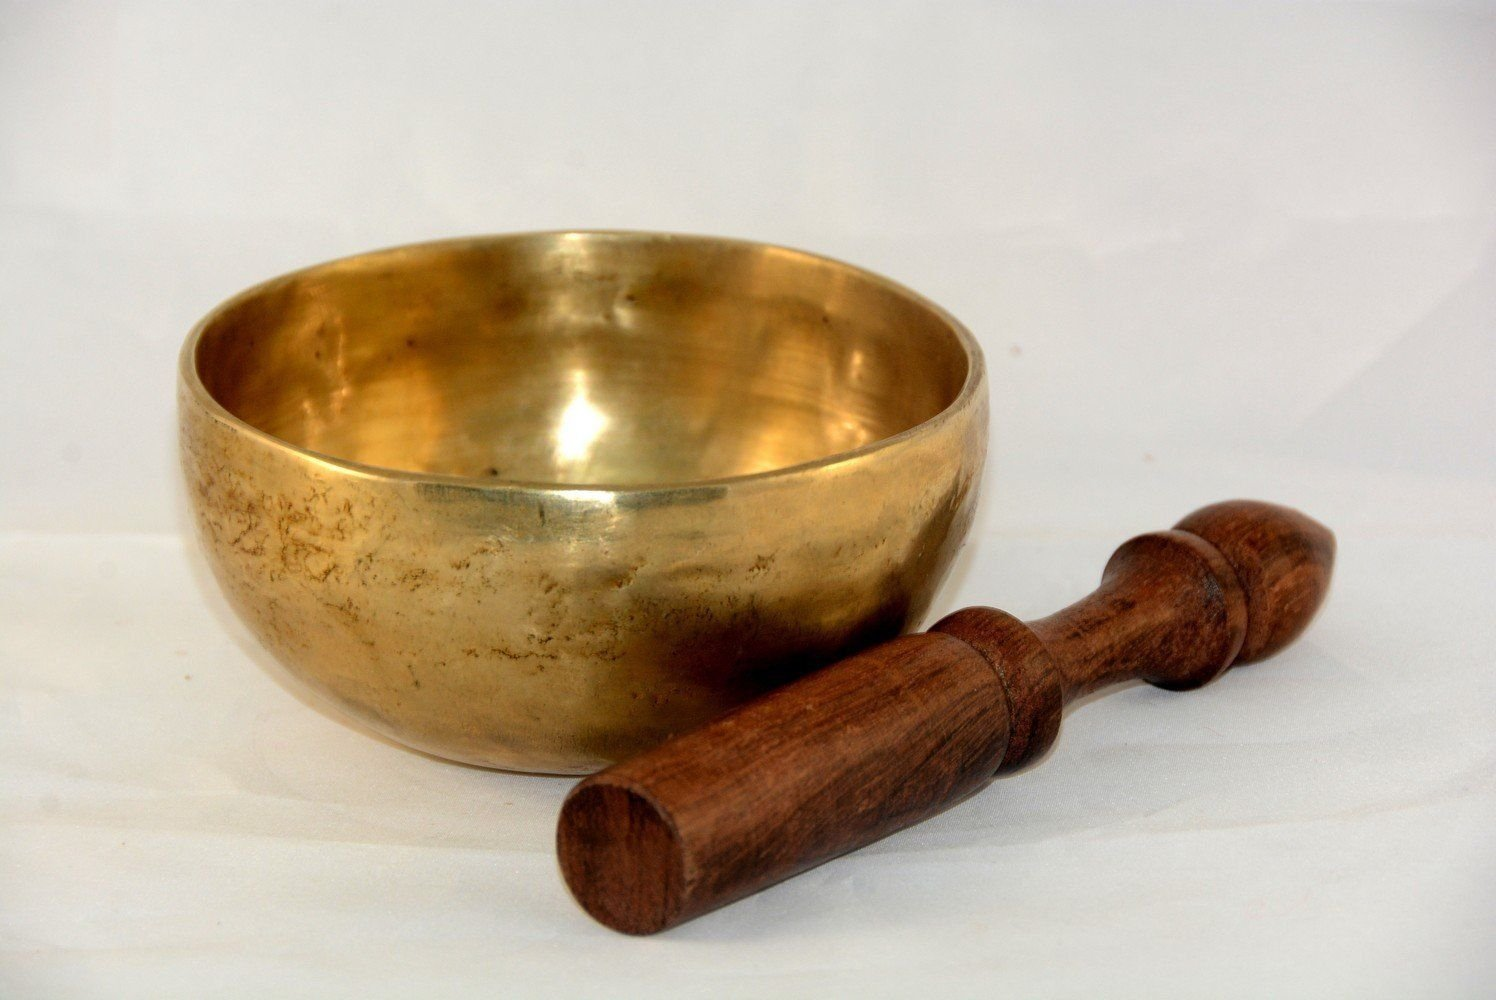 11 cm Tibetan singing bowl meditation with pillows and striker, Handmade Bowls by Nepalese Handicraft Zone NHZ